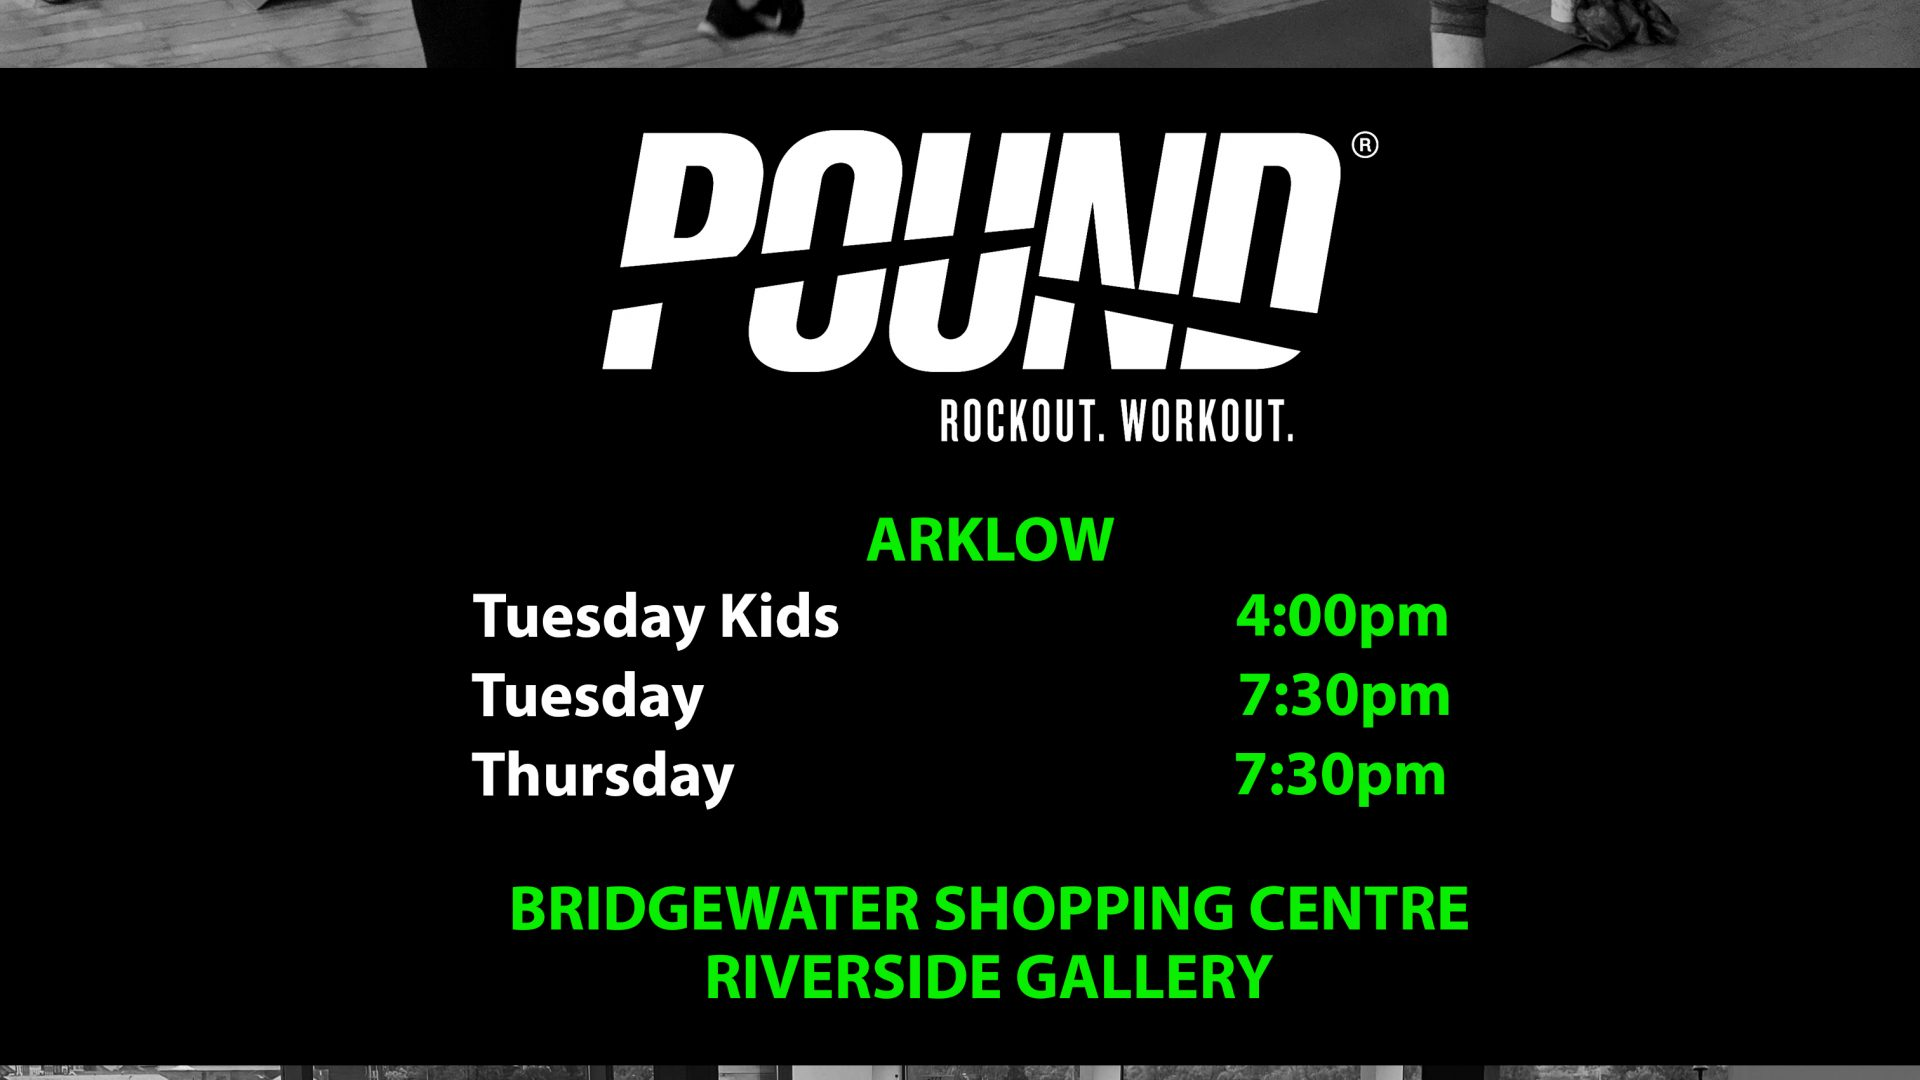 Advertising Pound   Arklow Only